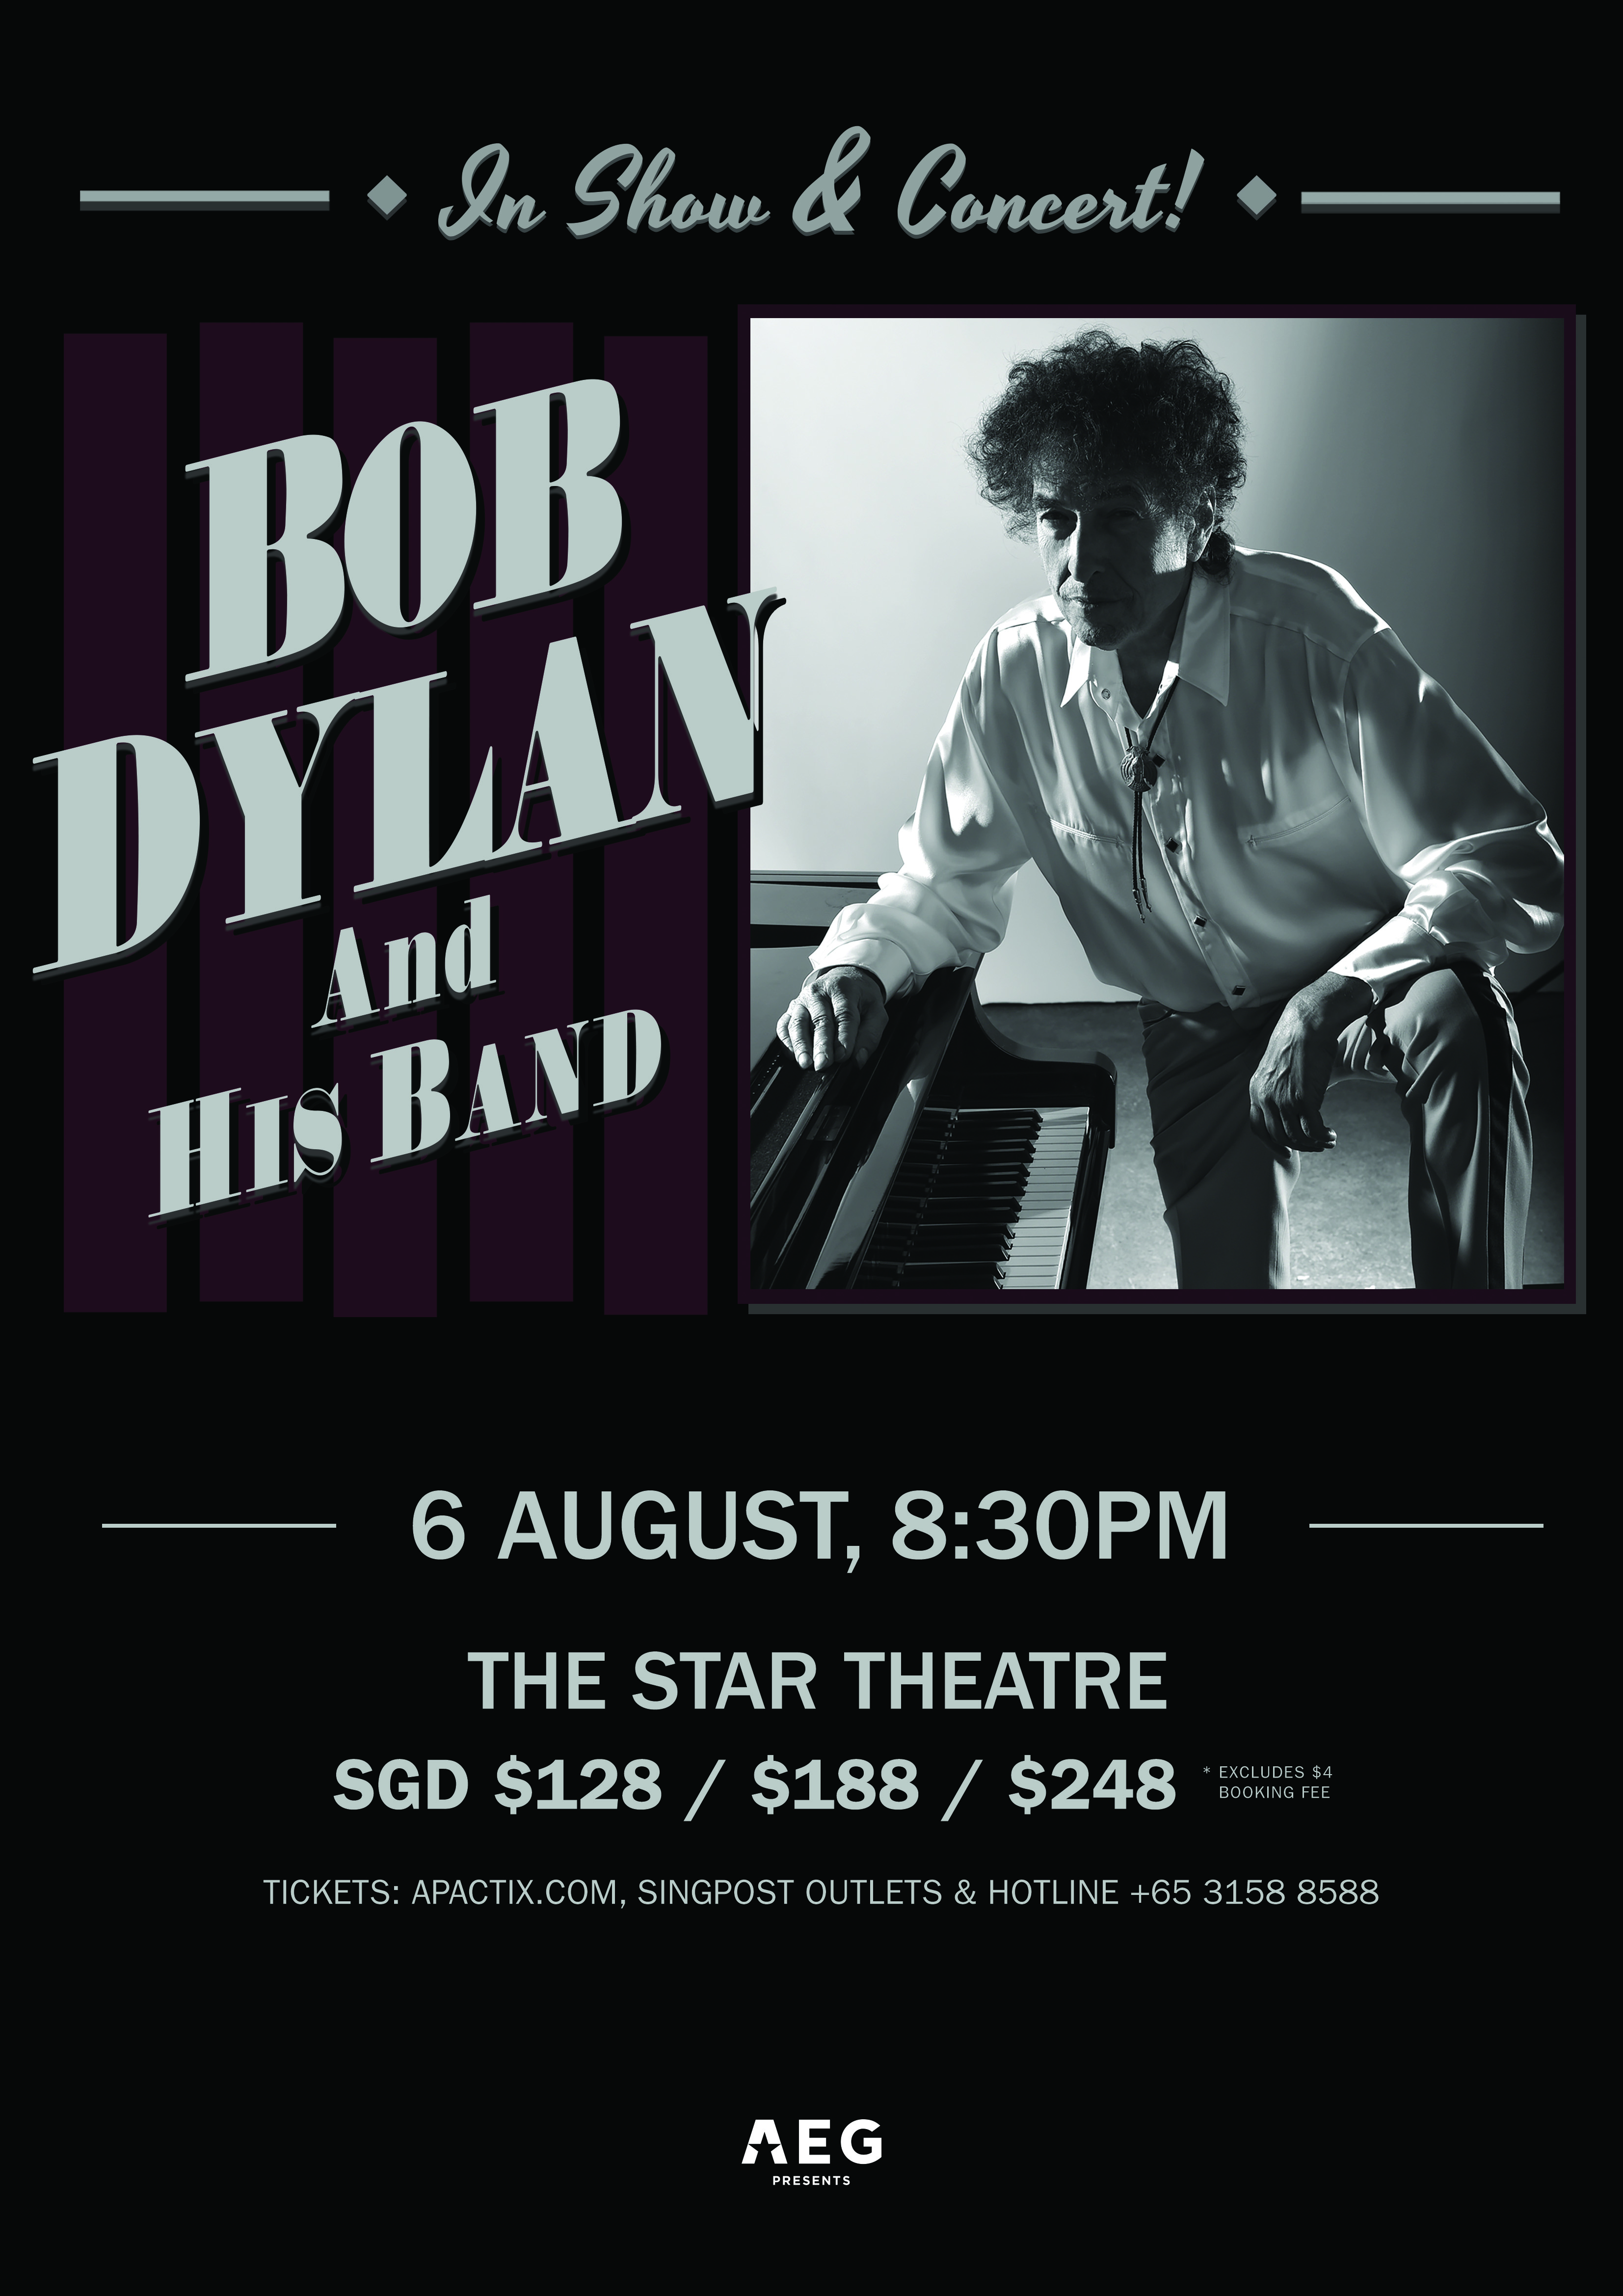 Bob Dylan and His Band Live in Singapore 2018